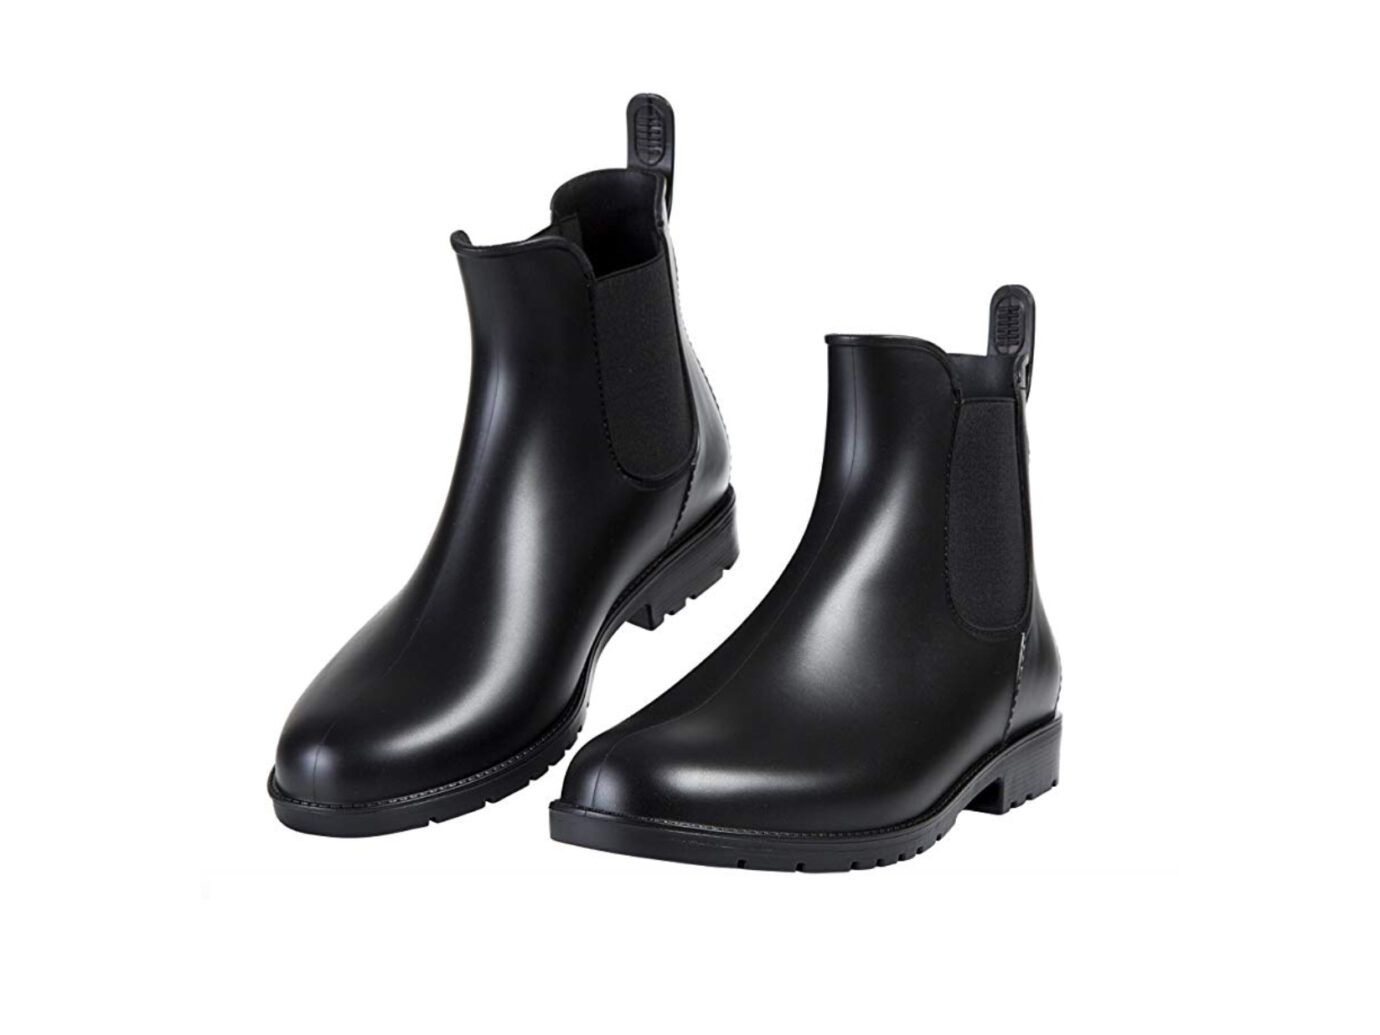 Asgard Women's Waterproof Chelsea Boot